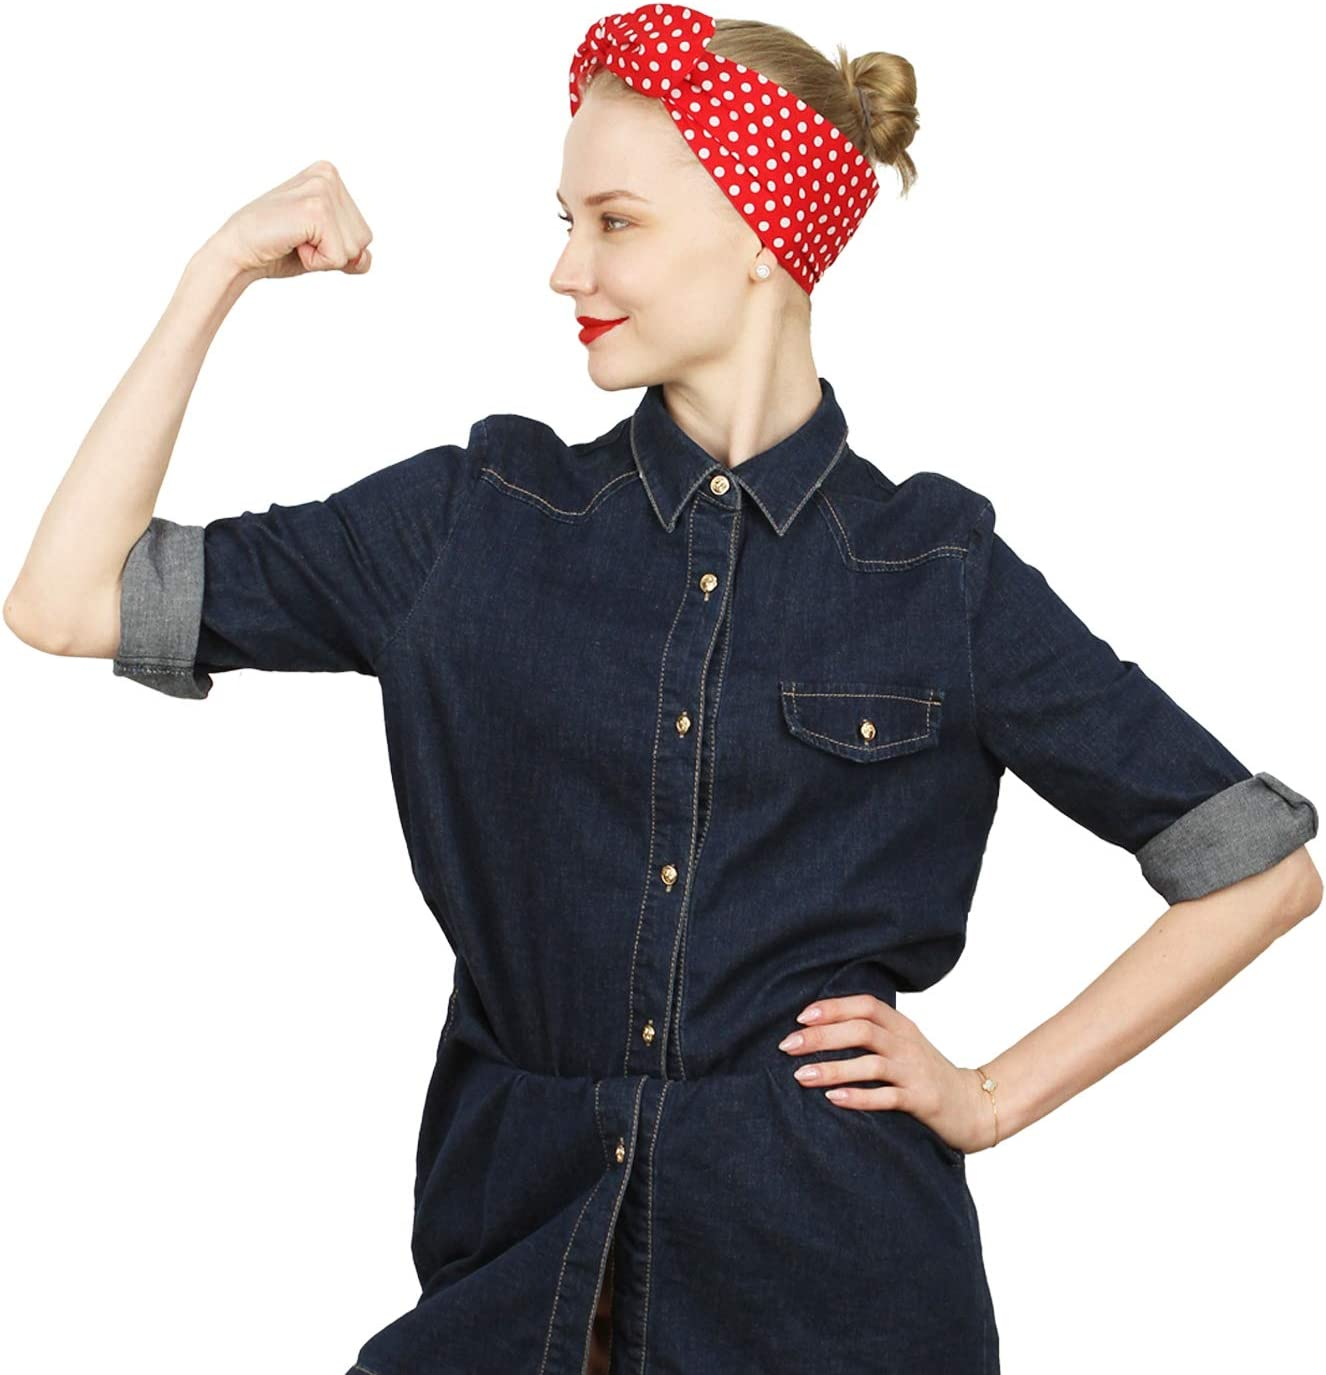 Rosie the Riveter Costume & Outfit Ideas Sea Team Bows Red with White Polka Dots Double Wide Headwrap Cotton Headband £6.99 AT vintagedancer.com